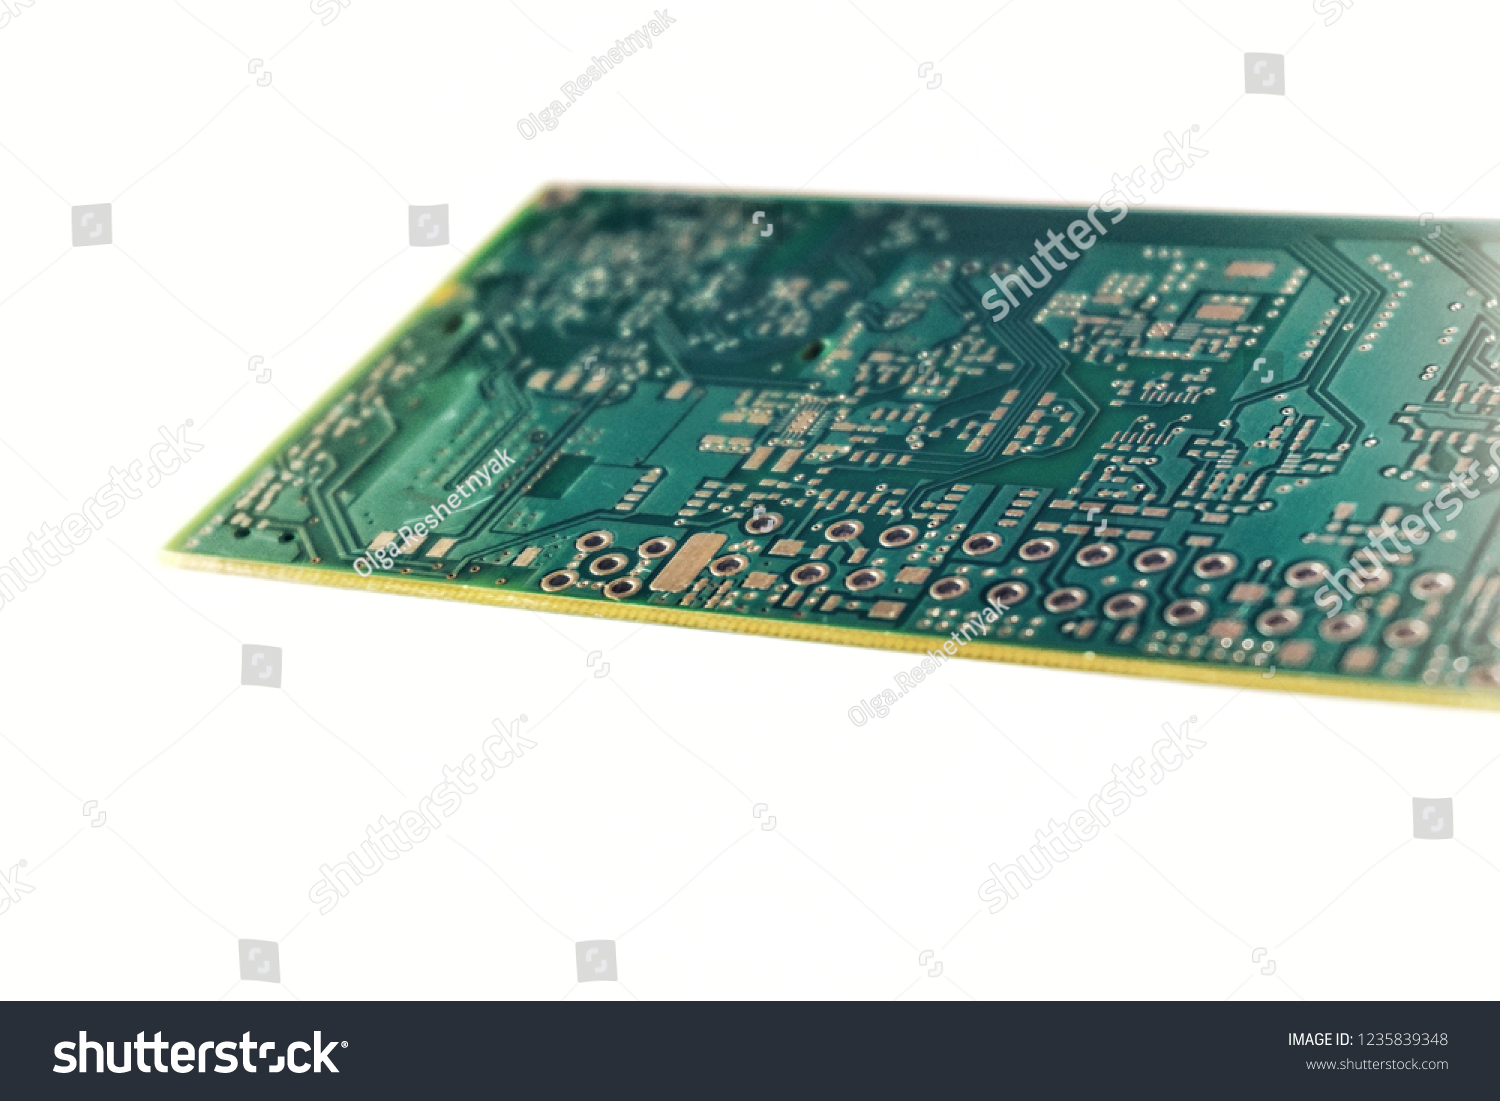 Printed Circuit Board Pcb Isolated On Stock Photo Edit Now Photos Images Pictures Shutterstock White Background